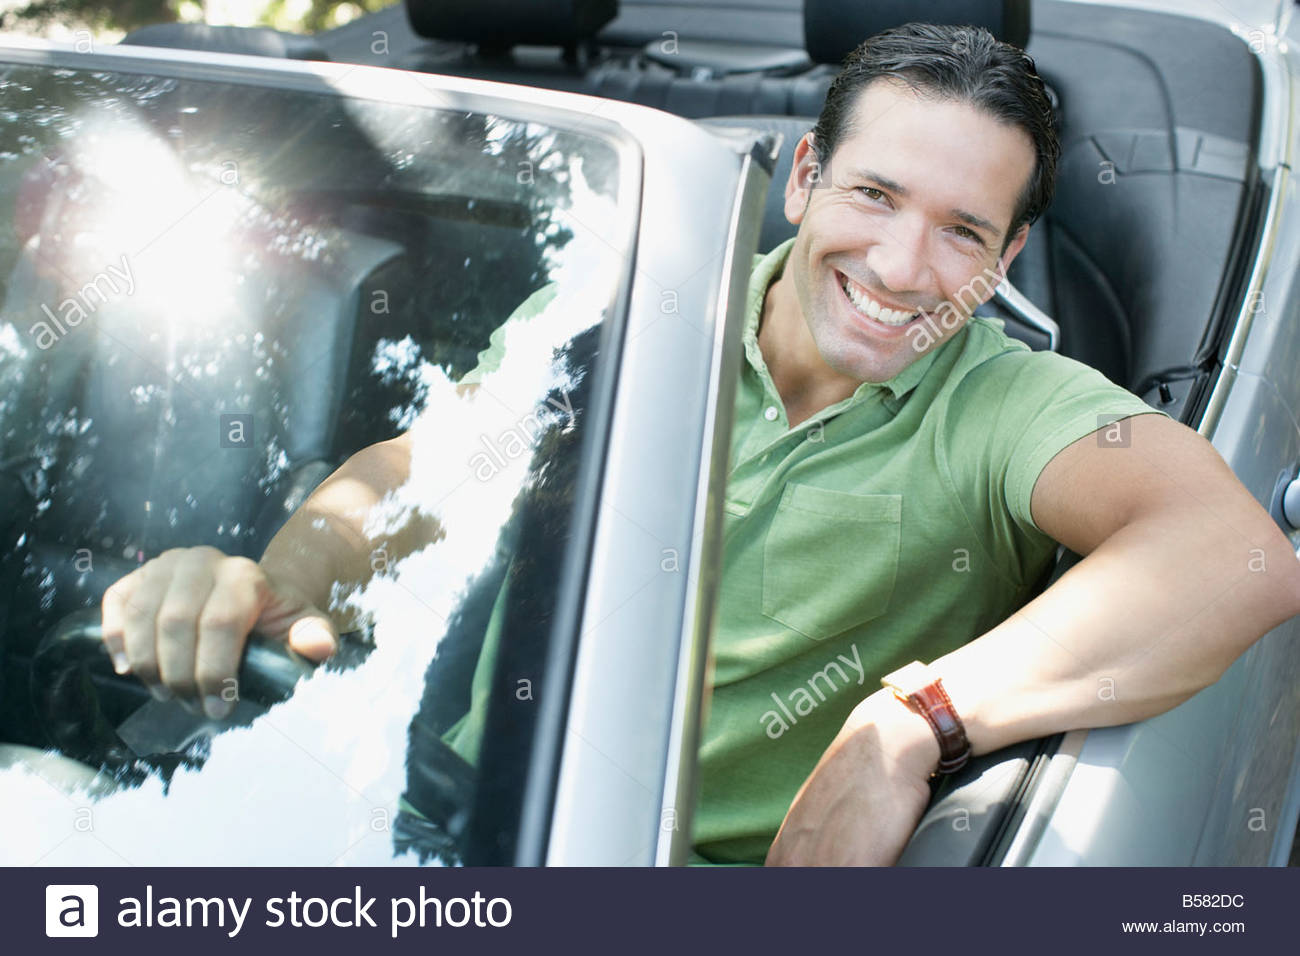 Man driving convertible sports car - Stock Image